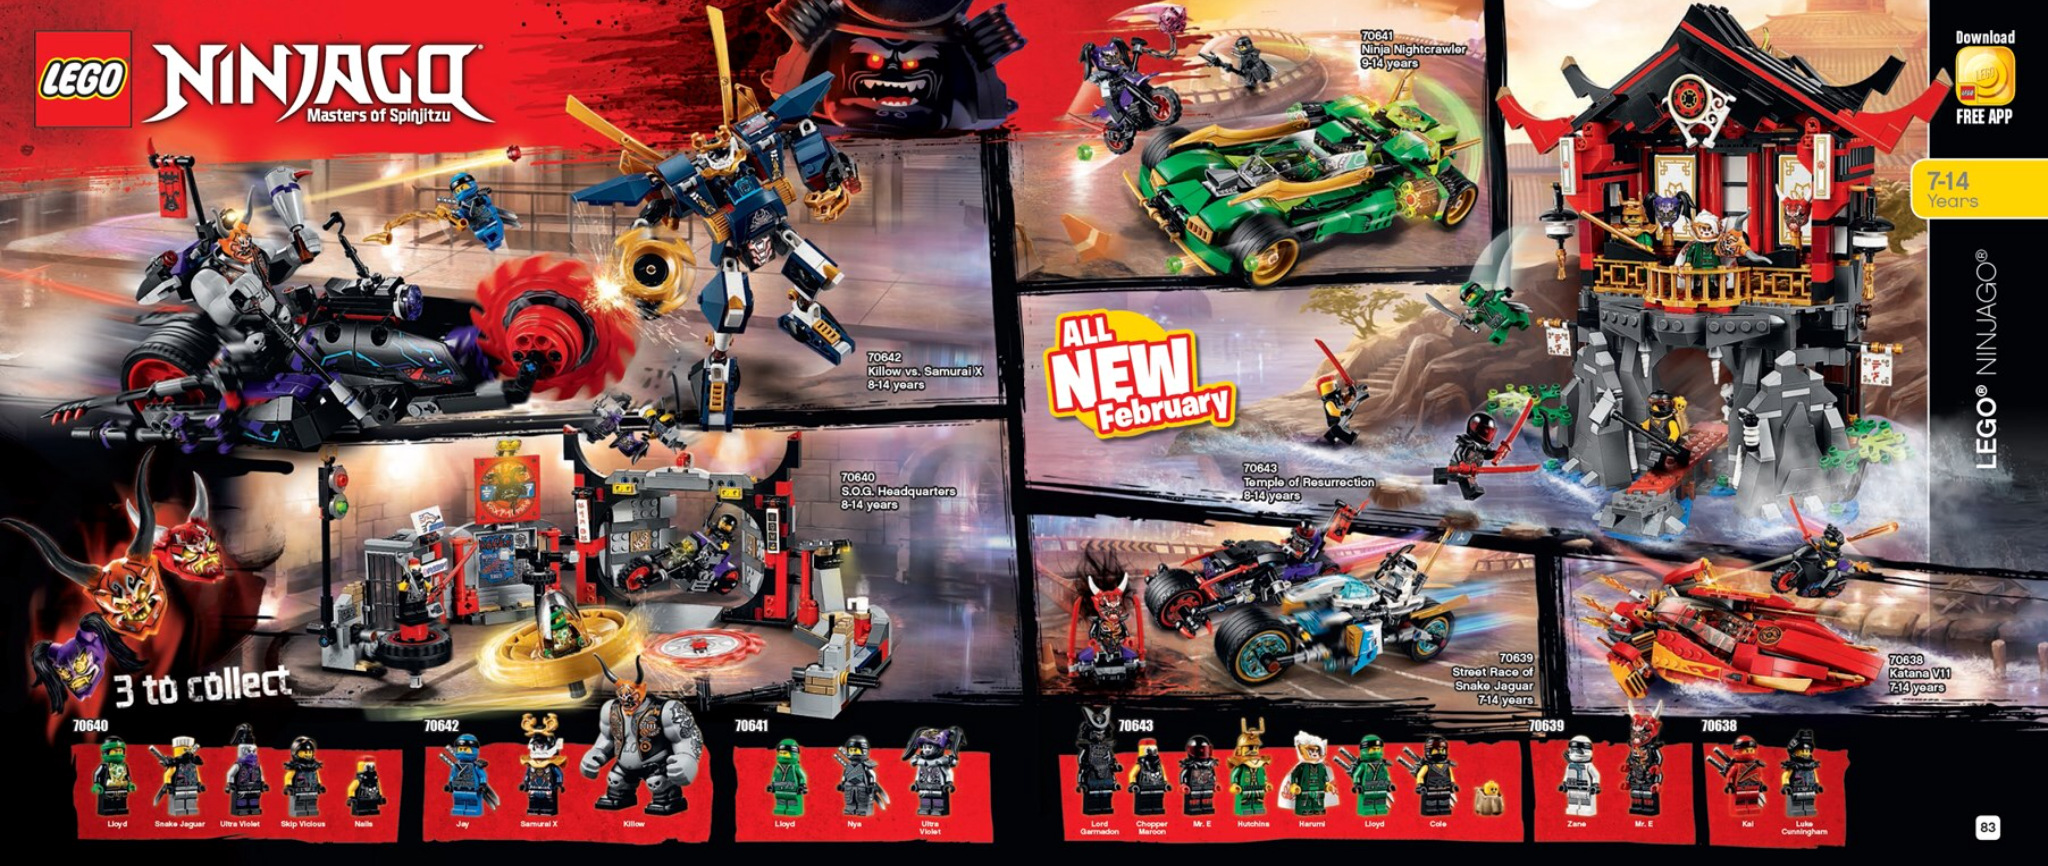 Australian Lego Release Dates First Half Of 2018 Sets January May Retailer Exclusives Jay S Brick Blog